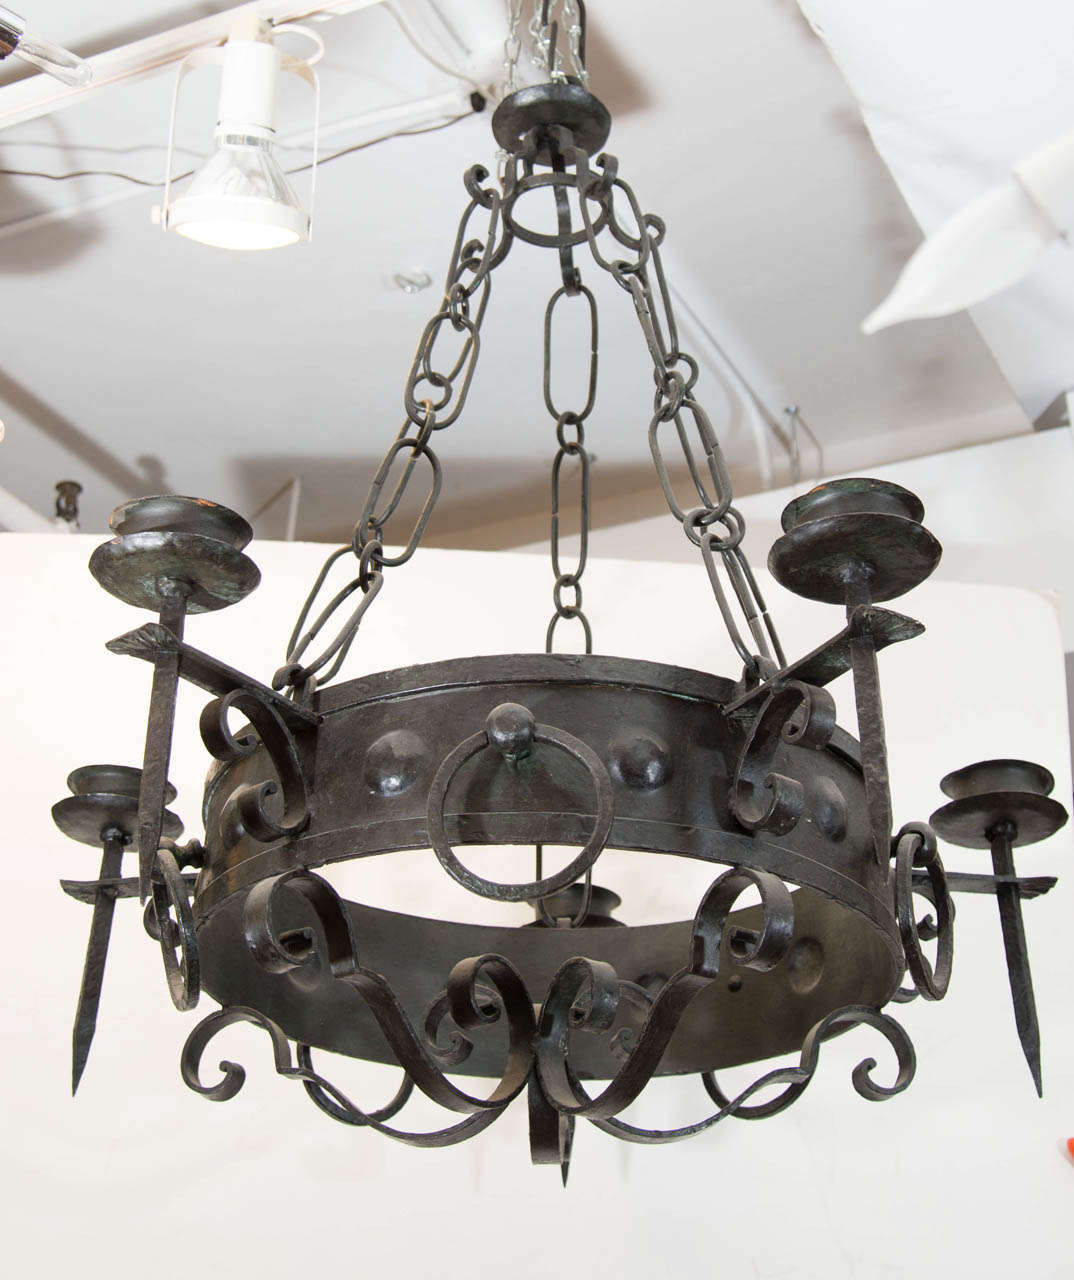 Antique Five-Light Iron Candelabra 2